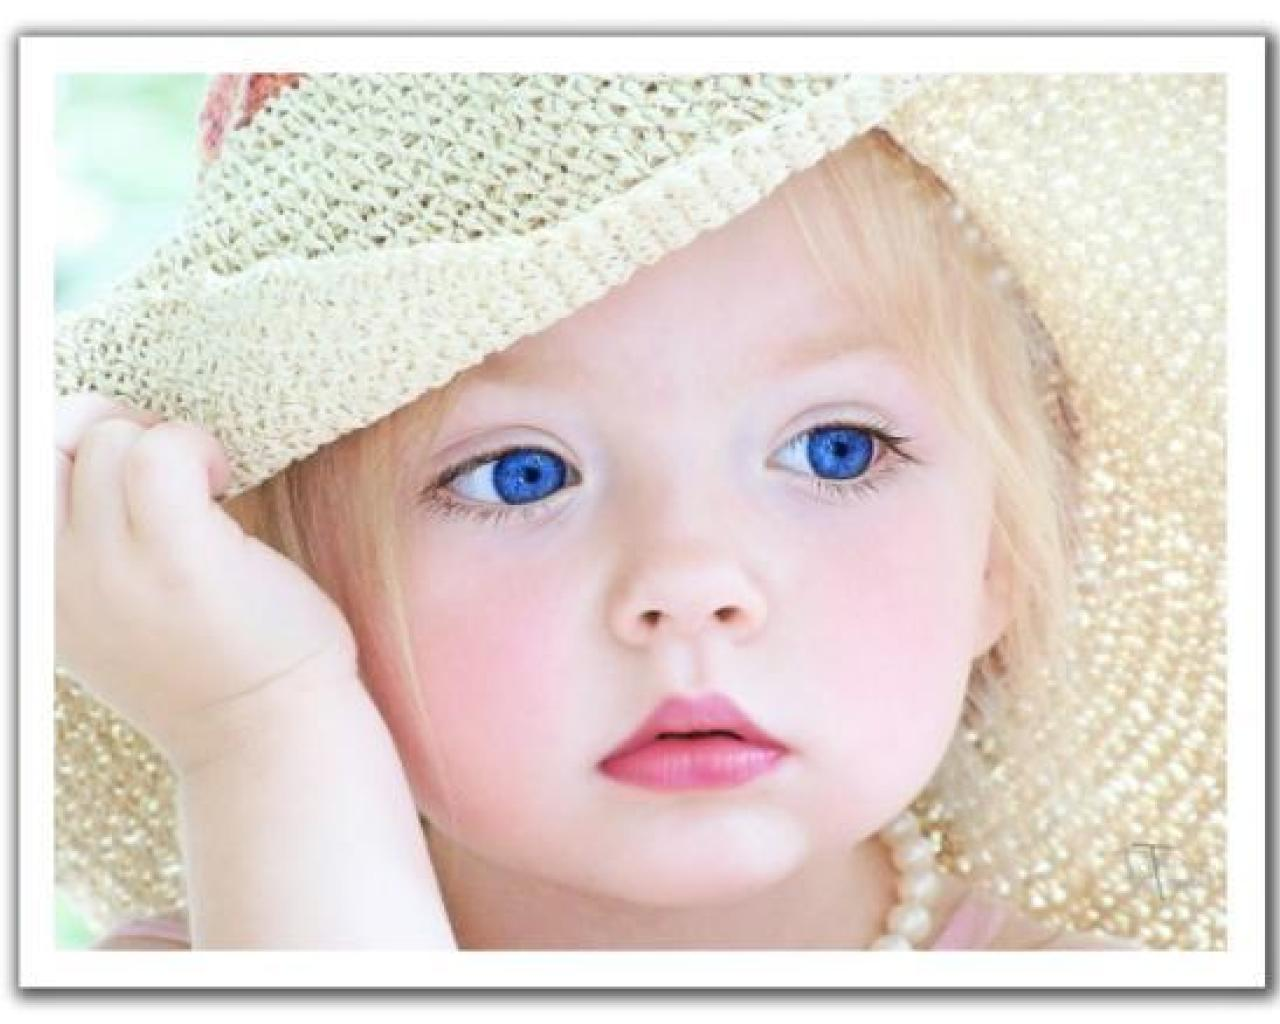 fashion arrivals: stylish and beautiful girl babies wallpapers